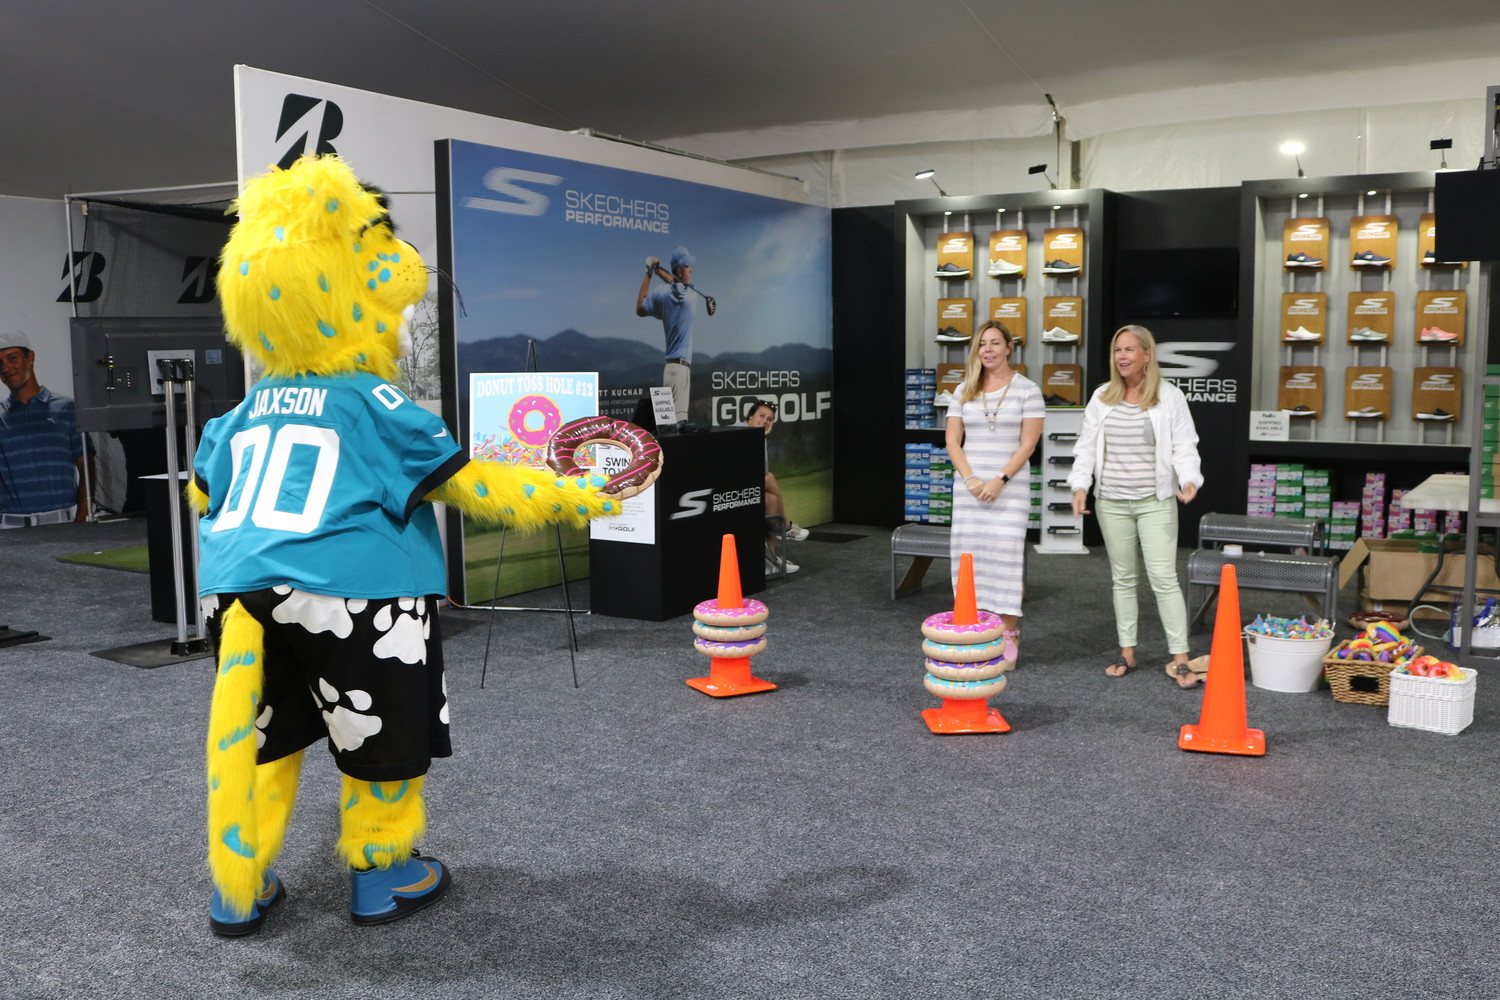 Jaguars mascot Jaxson De Ville tosses inflatable donuts in front of the Sketchers booth.